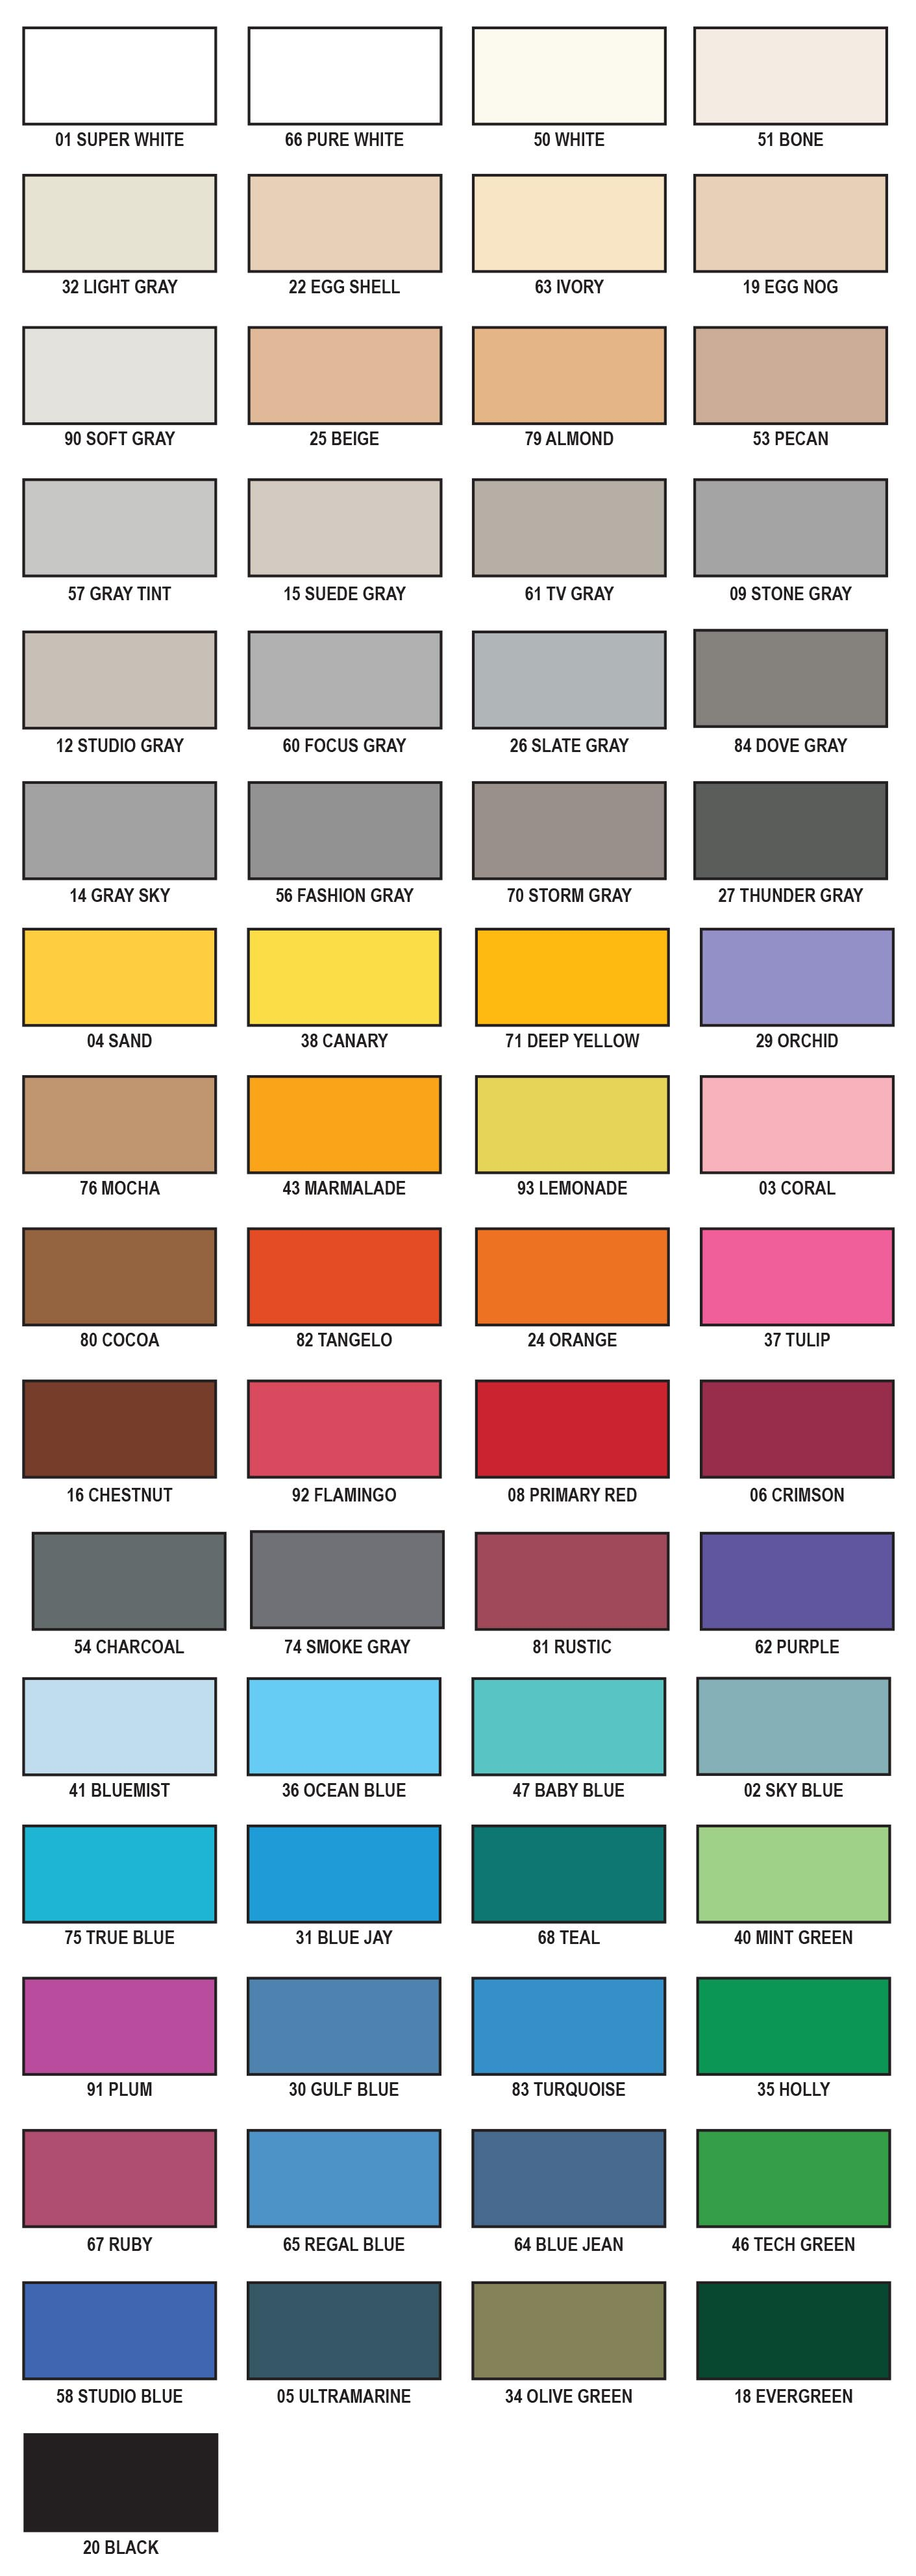 super white, pure white, white, bone, light gray, egg shell, ivory, egg nog, soft gray, beige, almond, pecan, gray tint, suede grey, tv gray, stone gray, studio gray, focus gray, slate gray, dove gray, gray sky, fashion gray, storm gray, thunder gray, sand, canary, deep yellow, orchid, mocha, marmalade, lemonade, coral, cocoa, tangelo, orange, tulip, chestnut, flamingo, primary red, crimson, charcoal, smoke gray, rustic, purple, bluemist, ocean blue, baby blue, sky blue, true blue, blue jay, teal, mint green, plum, gulf blue, turquoise, holly, ruby, regal blue, blue jean, tech green, chroma green, studio blue, ultramarine, olive green, evergreen, black